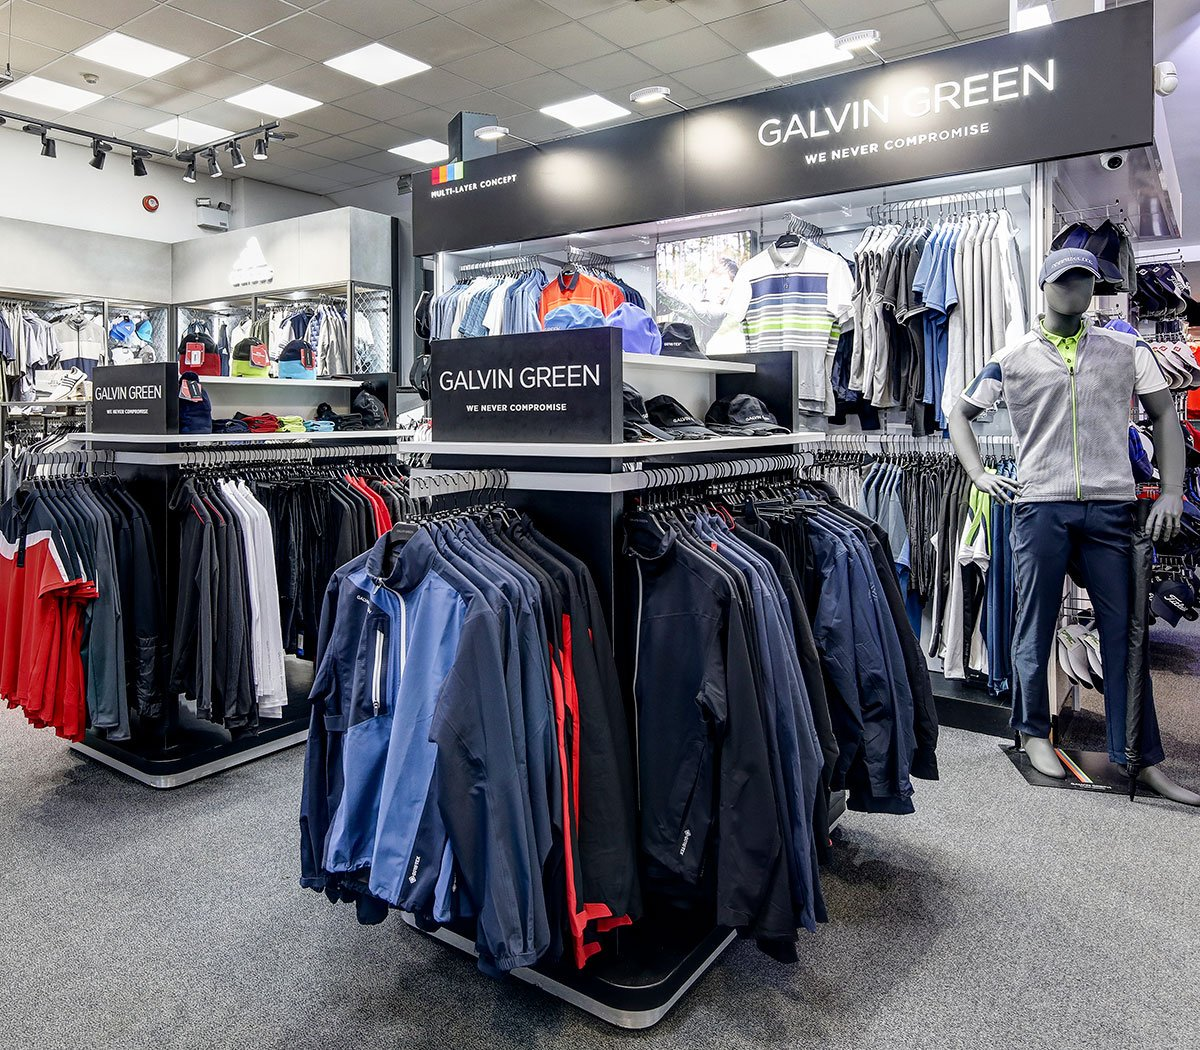 Nice refresh of the Galvin Green 'shop-in-shop' featuring the new AW19 collection. Also a little #ThrowBackThursday to when Christiaan Bezuidenhout visited Silvermere earlier this month.